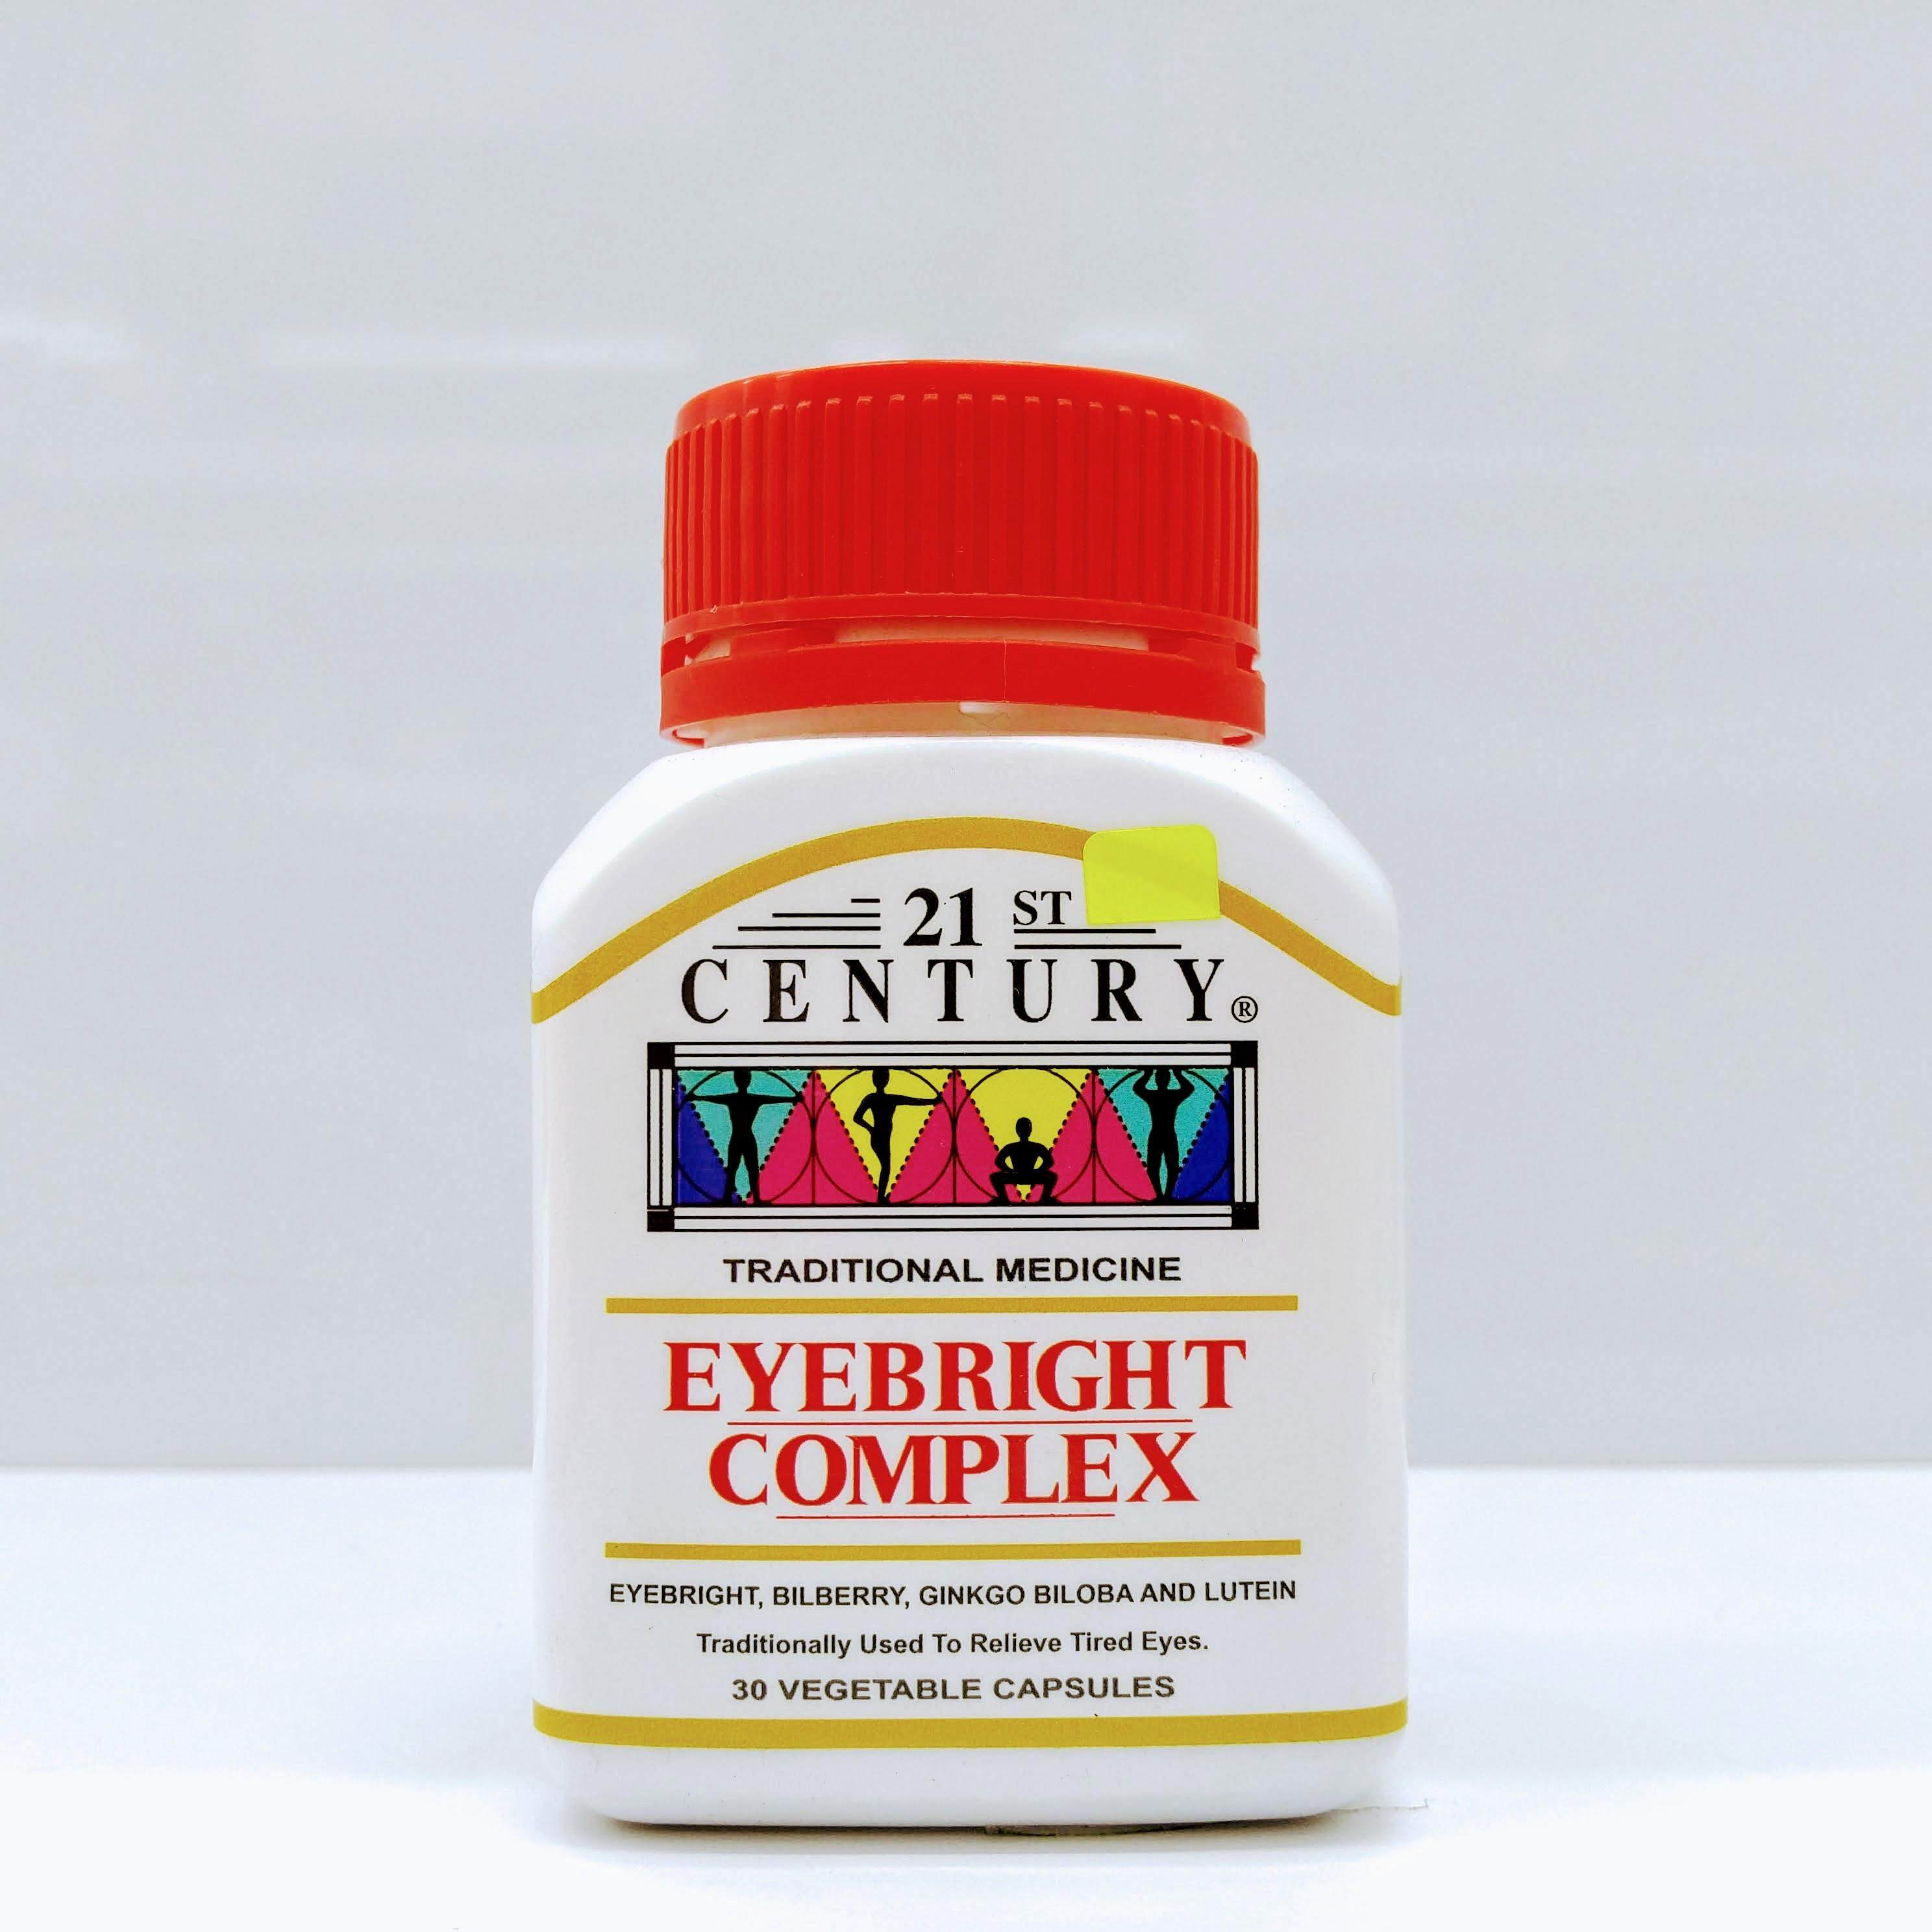 21st Century Eyebright Complex [Relieve Tired Eyes] Capsule 30's exp20.01